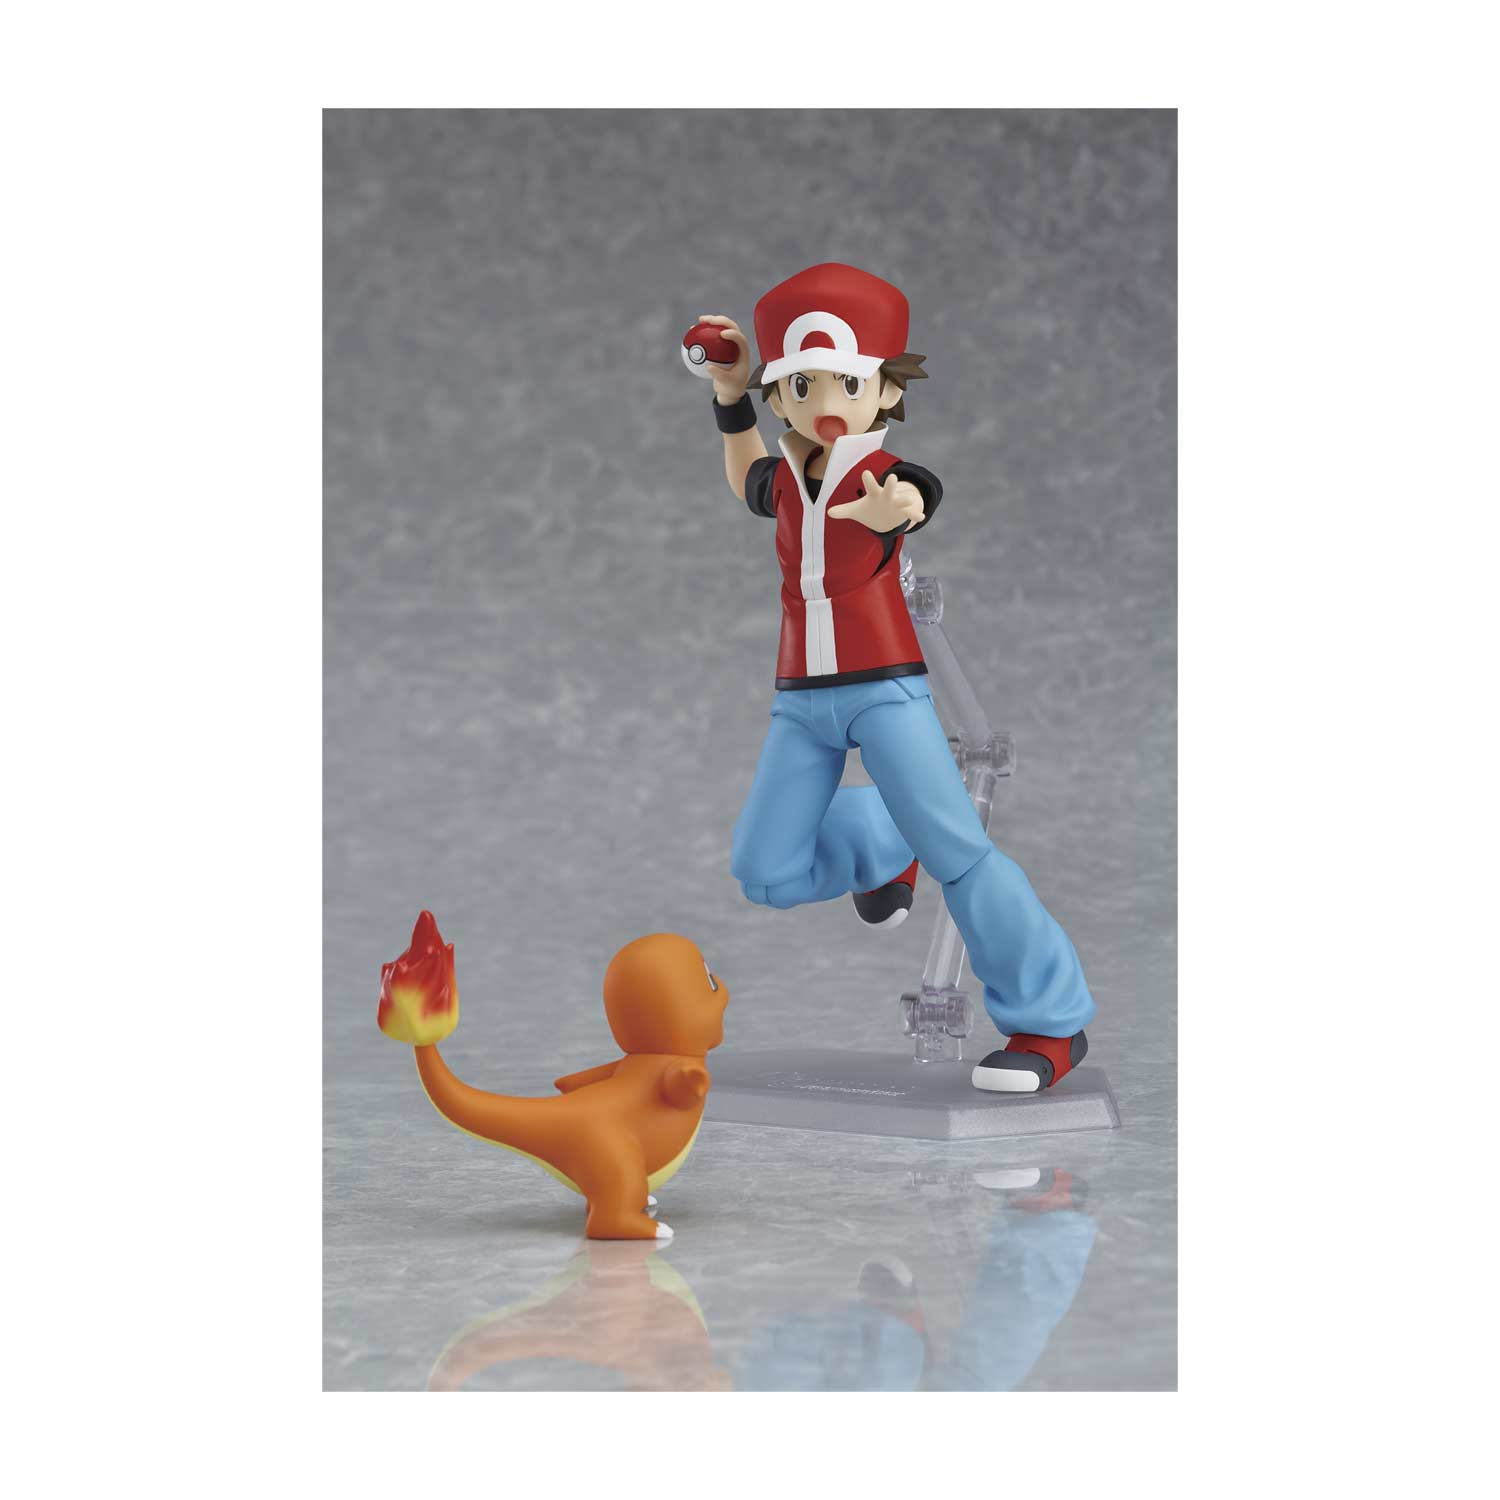 337cf6b4 ... Image for figma: Red Posable Figure with Pikachu, Bulbasaur, Charmander  & Squirtle from ...